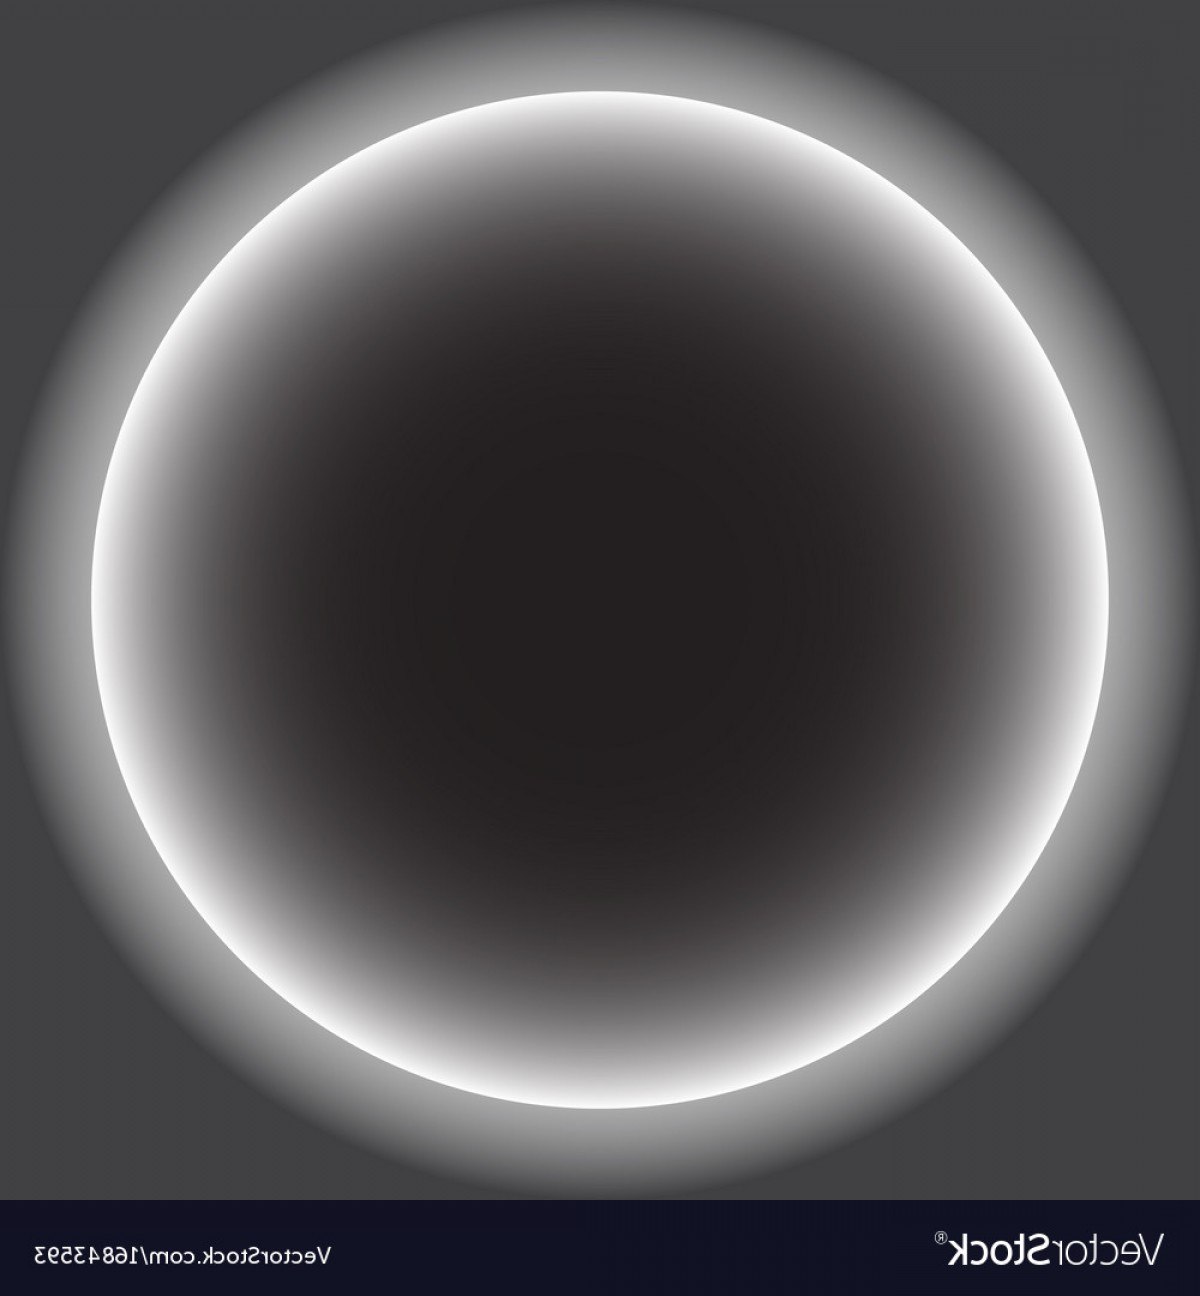 Whitew Eclipse Vector: Gray Circle With White Halo Solar Eclipse Vector